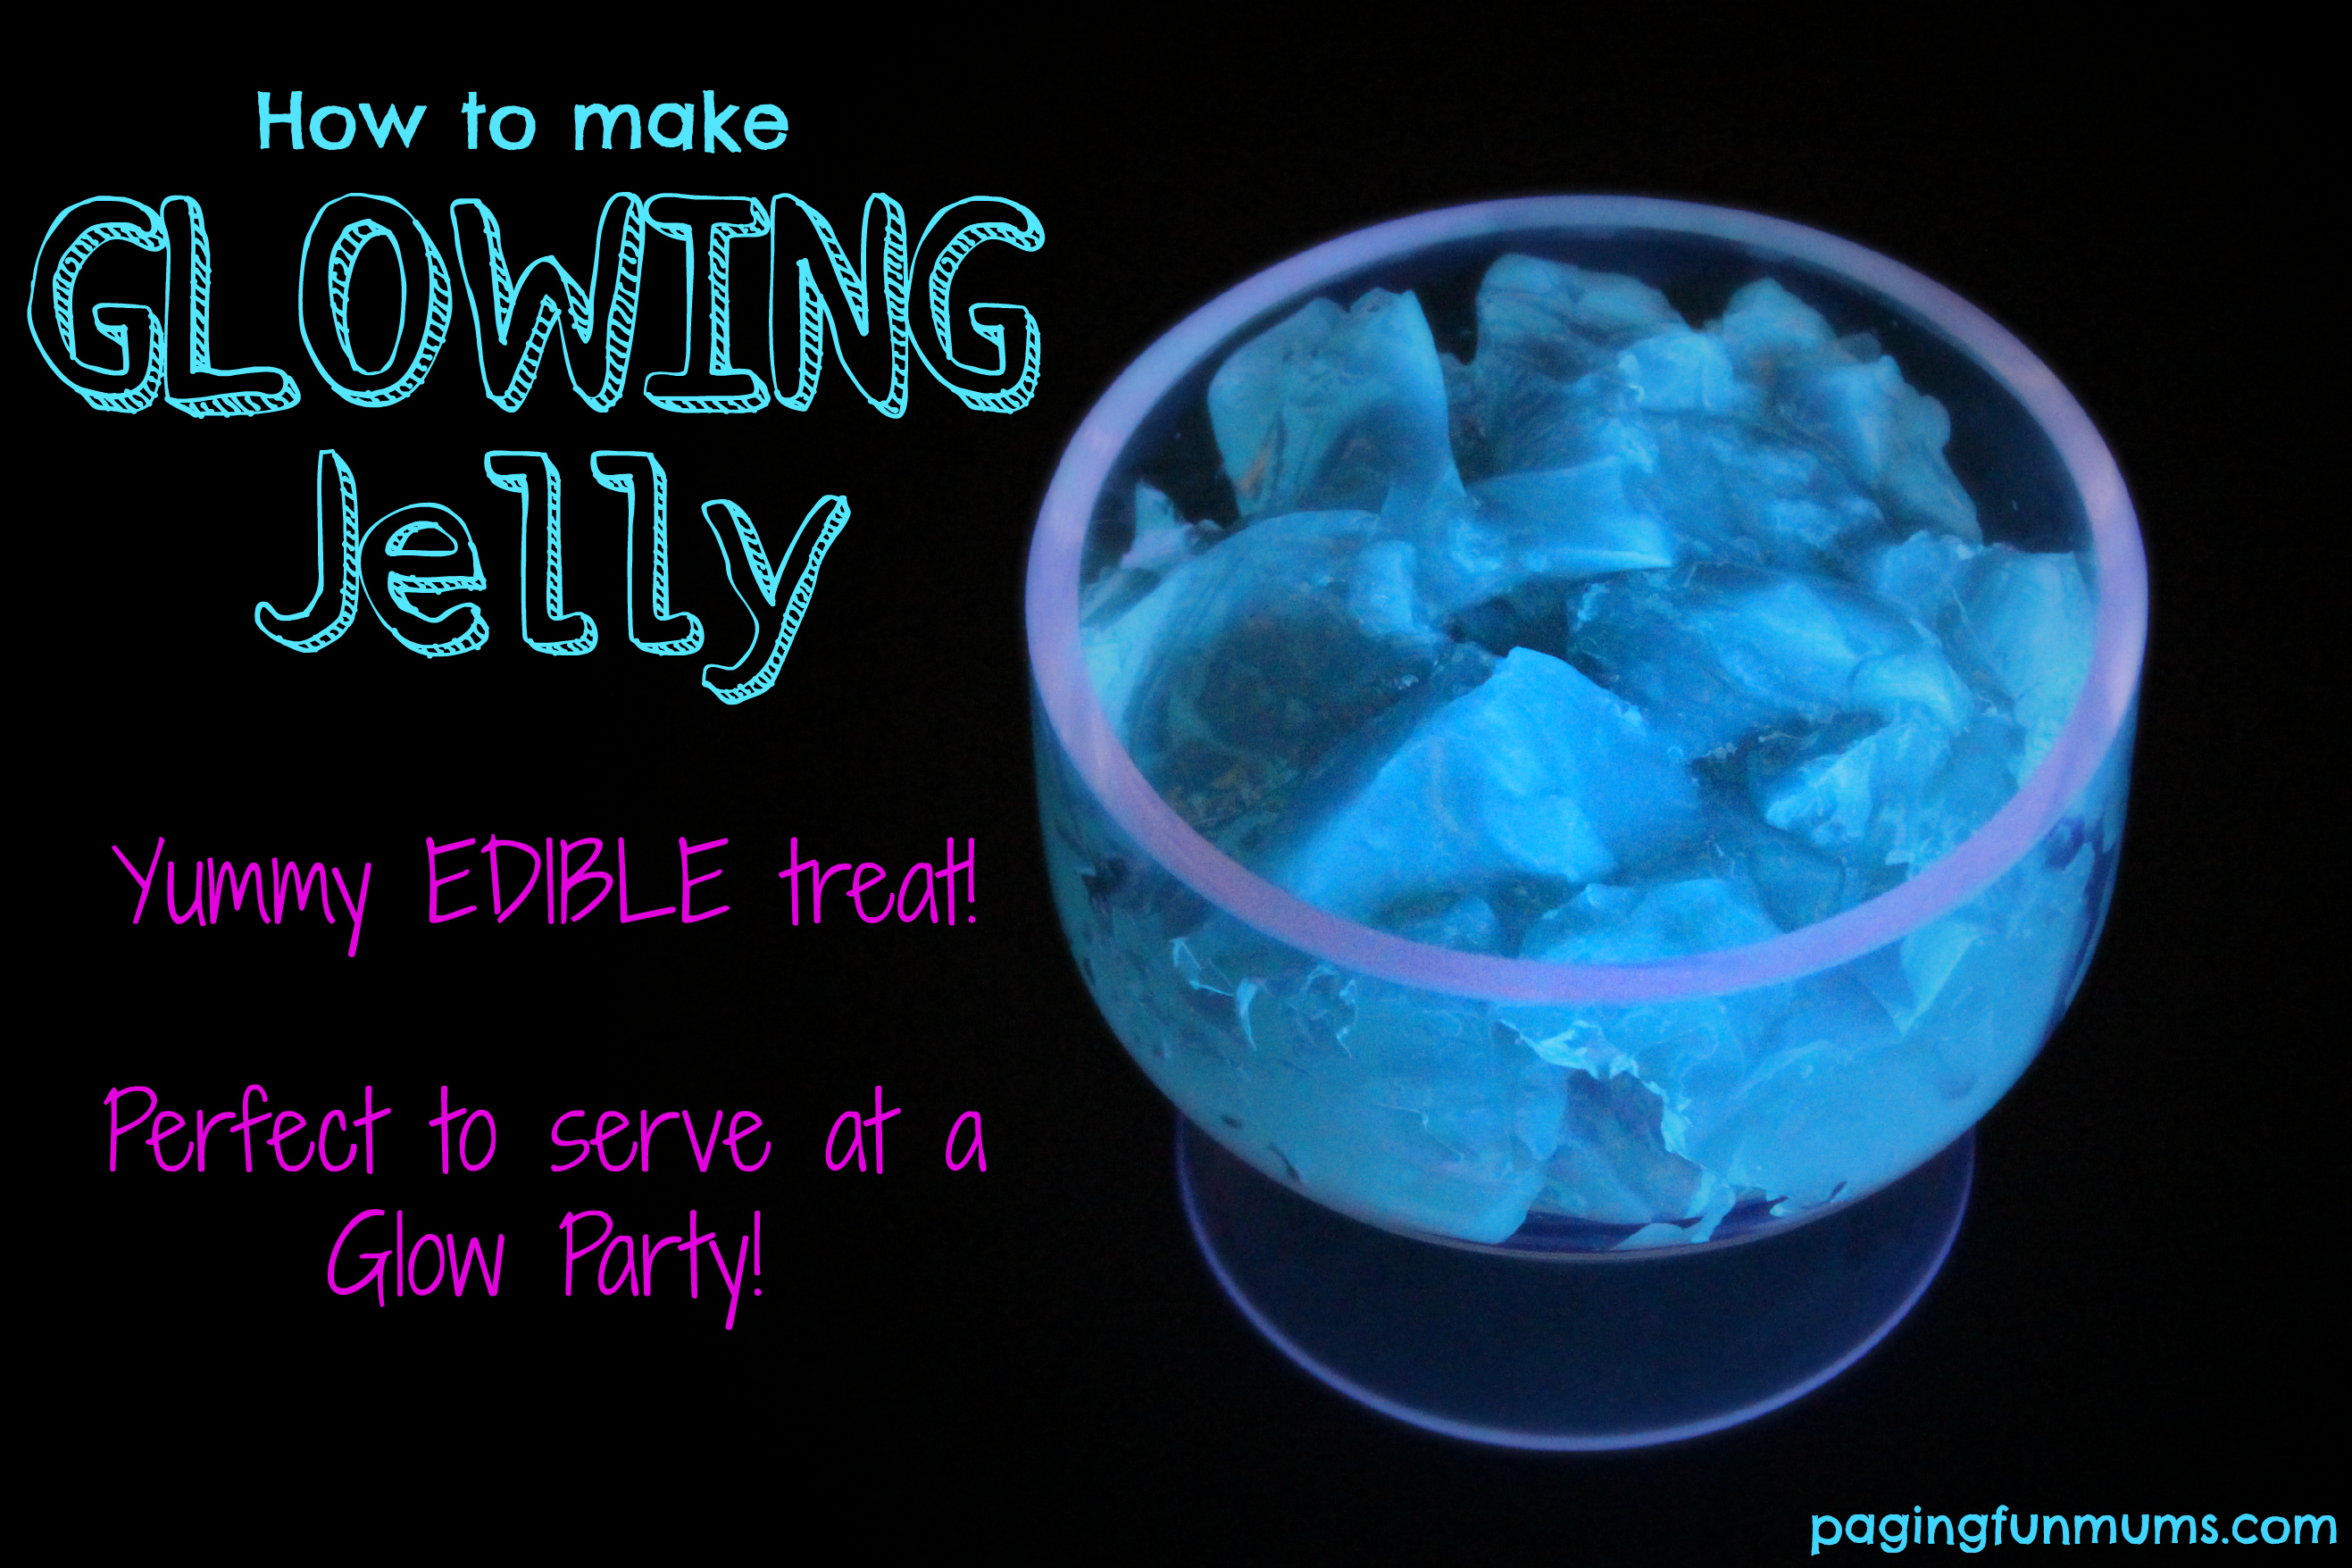 How to make Glowing Jelly